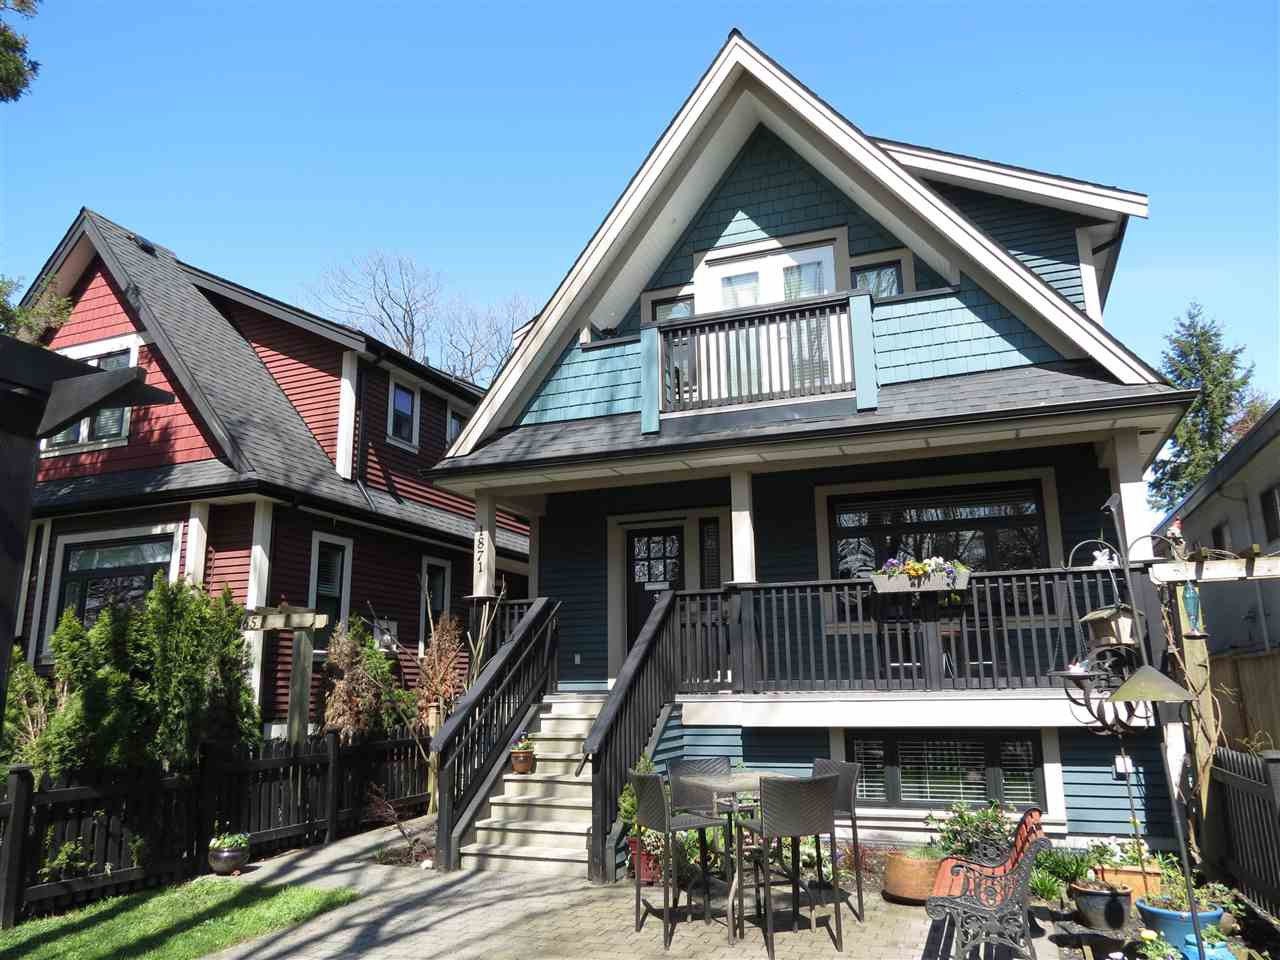 Main Photo: 1871 KITCHENER Street in Vancouver: Grandview VE House 1/2 Duplex for sale (Vancouver East)  : MLS®# R2156269